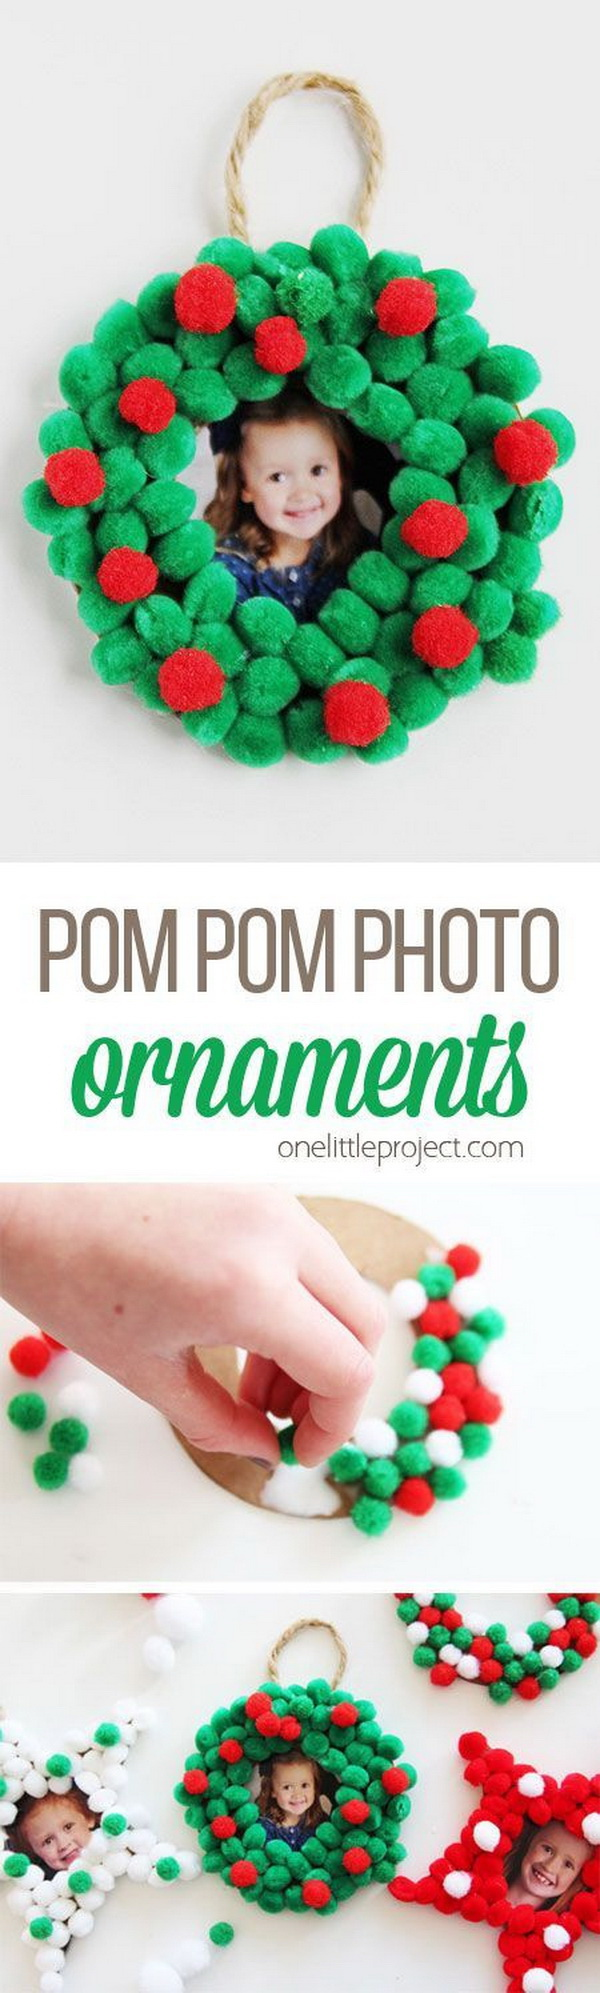 Pom Pom Christmas Photo Ornaments. Easy and Fun DIY Christmas crafts for You and Your Kids to Have Fun.